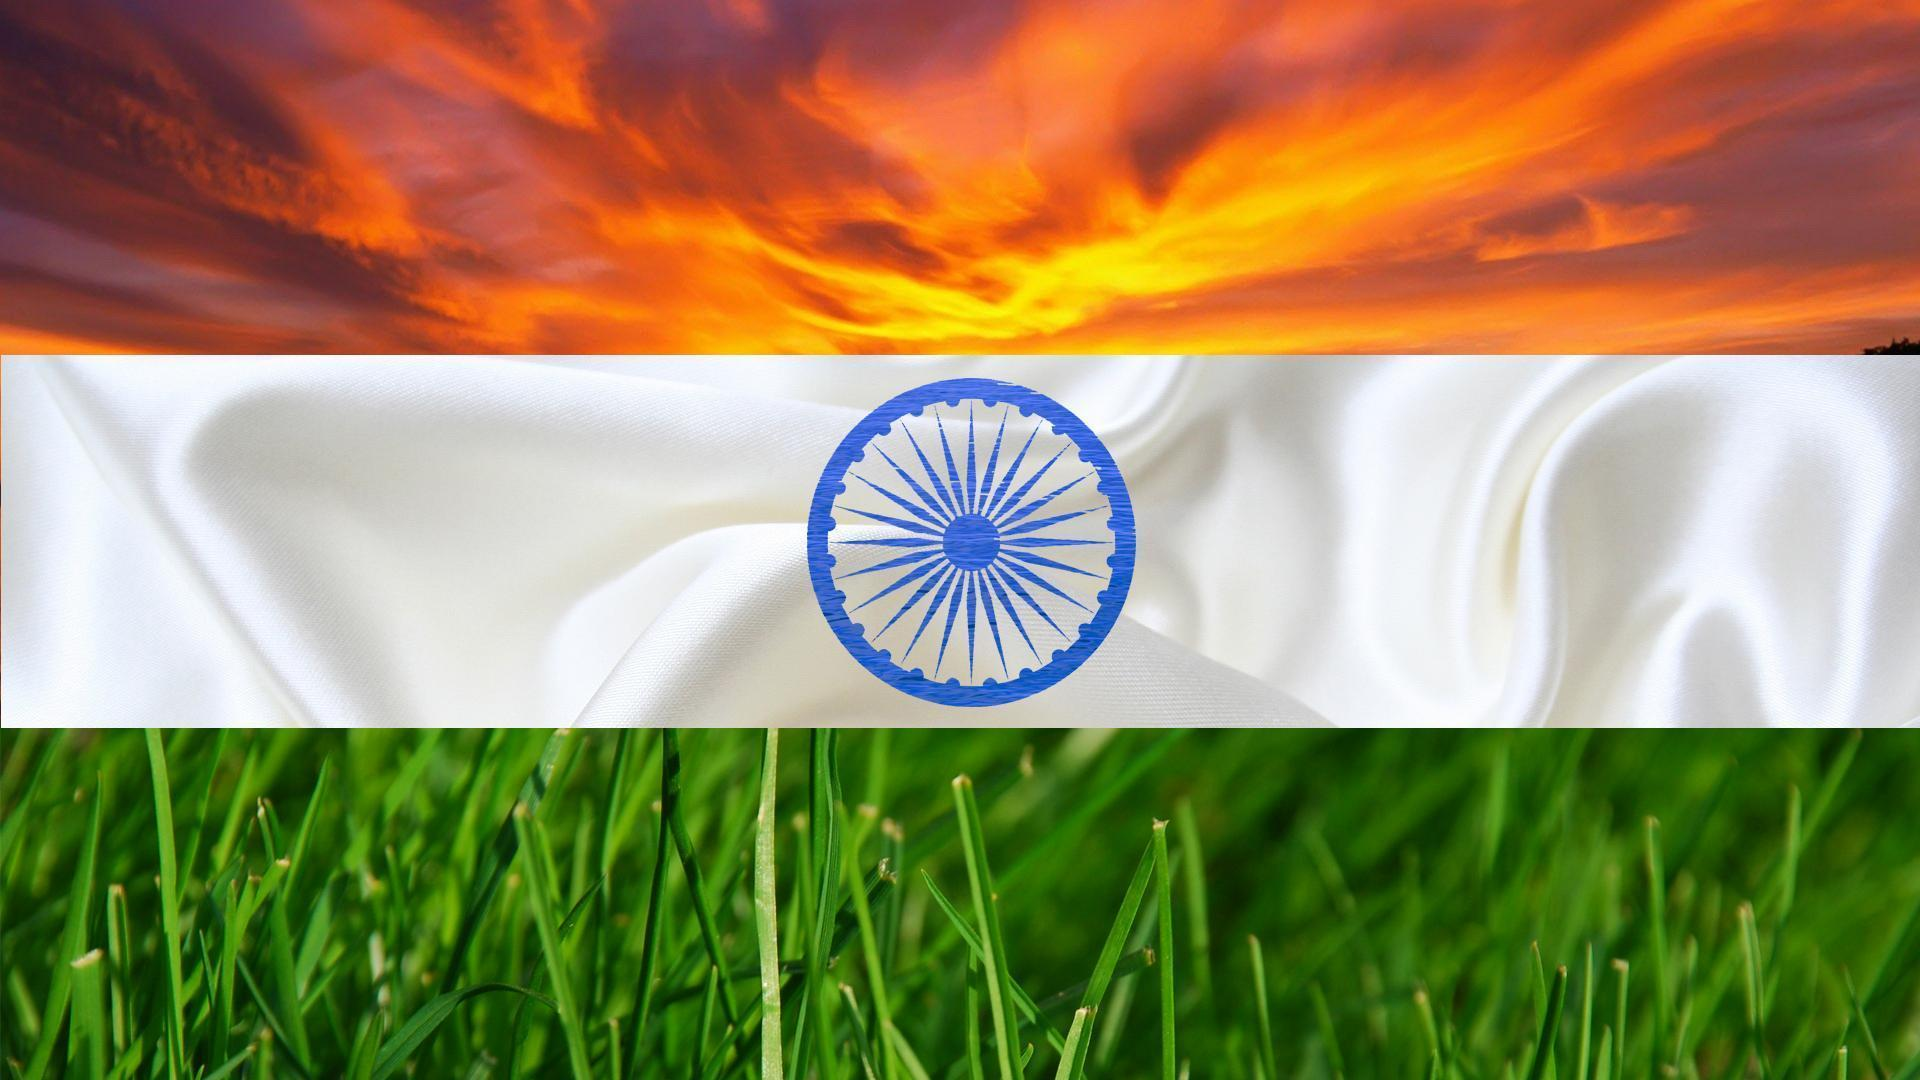 Download Latest Indian Flag Image For WhatsApp Dp&Facebook